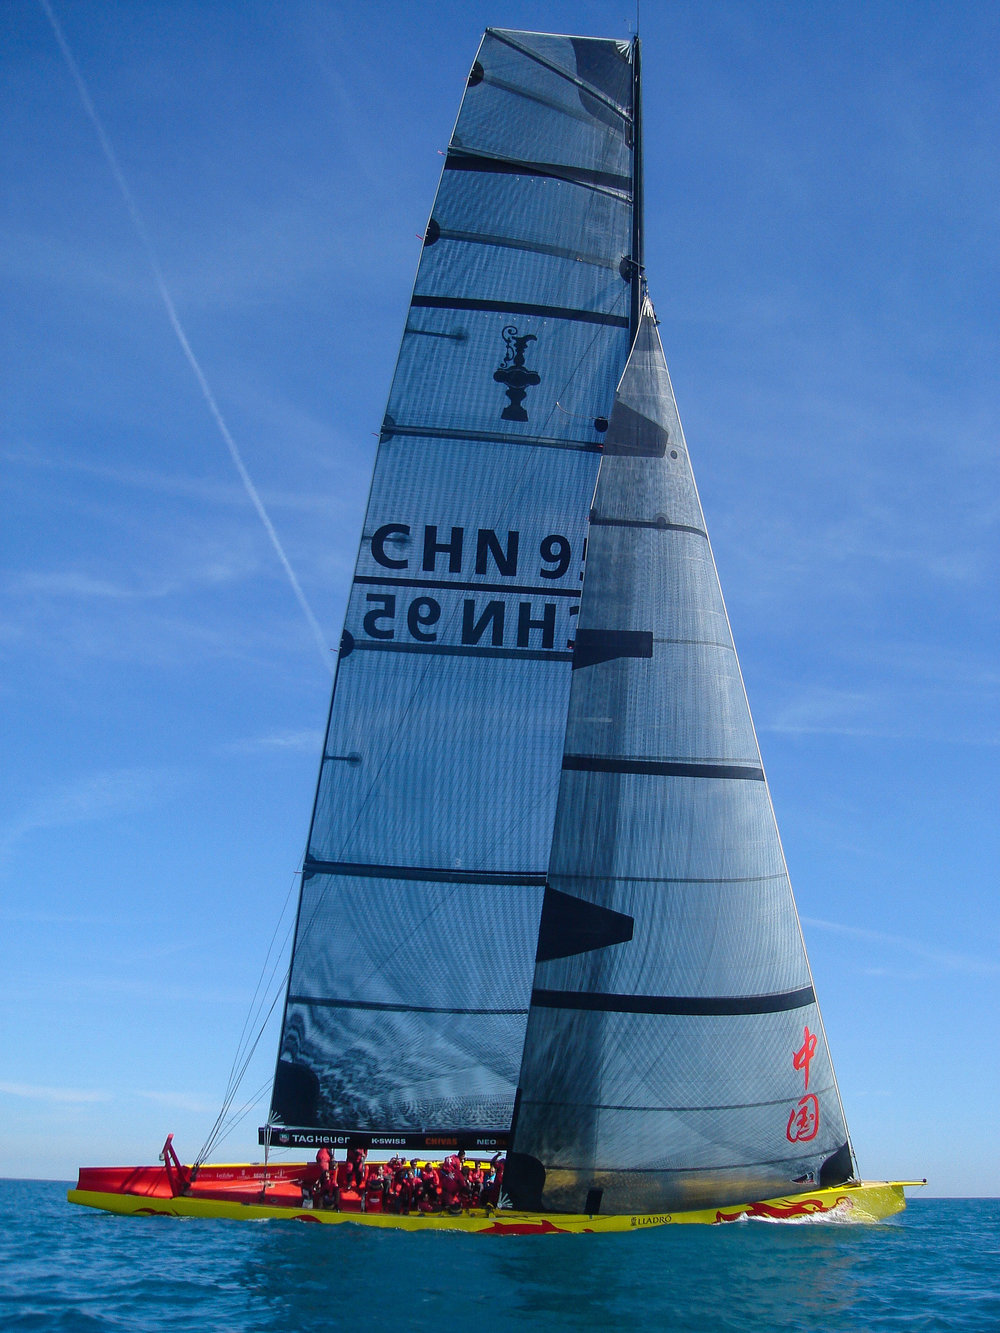 UK Sailmakers Square Top Mainsail 1 China Team CHN 95 2.jpg